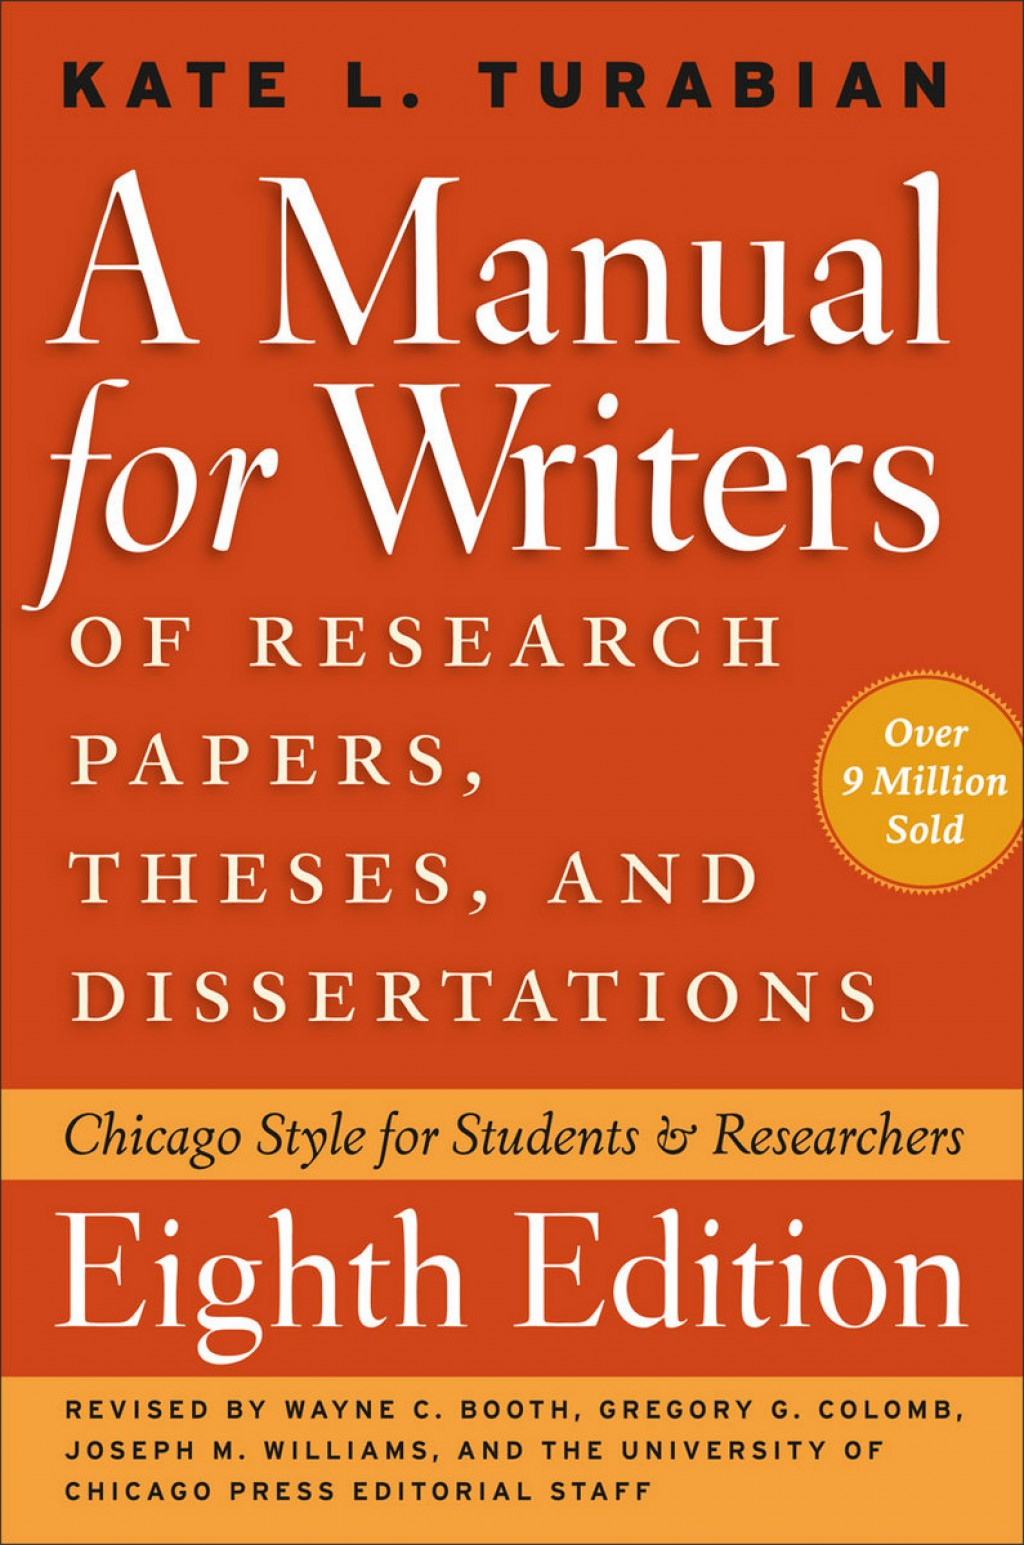 002 Frontcover Manual For Writers Of Researchs Theses And Dissertations Sensational A Research Papers Eighth Edition Pdf 9th 8th Large